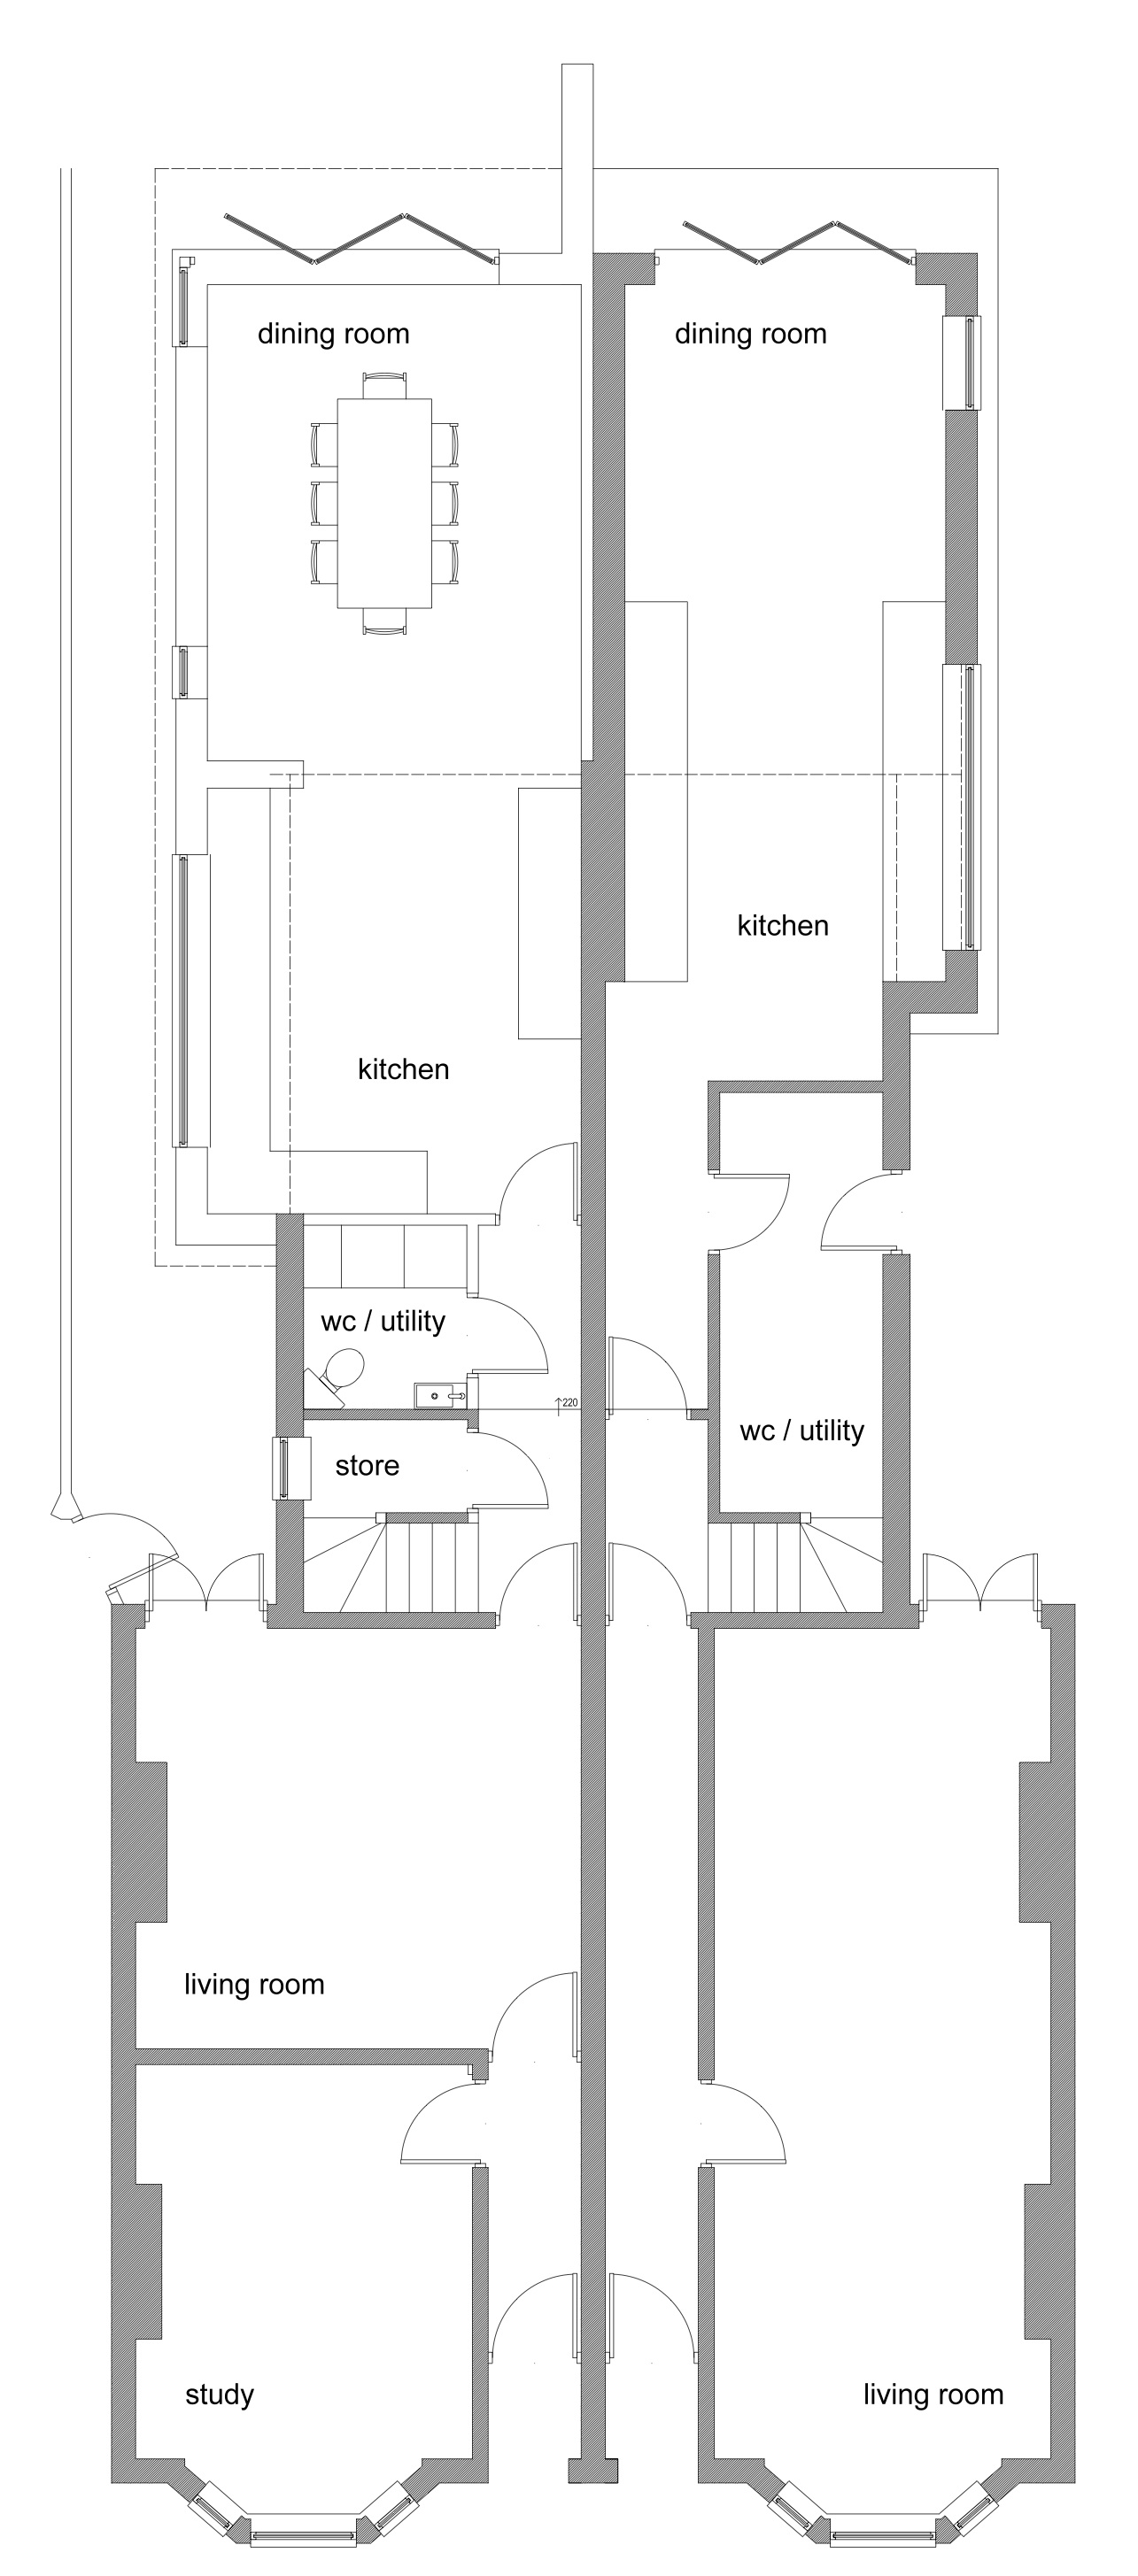 As Proposed : Victorian Semi detached single storey rear extension and internal reconfiguration